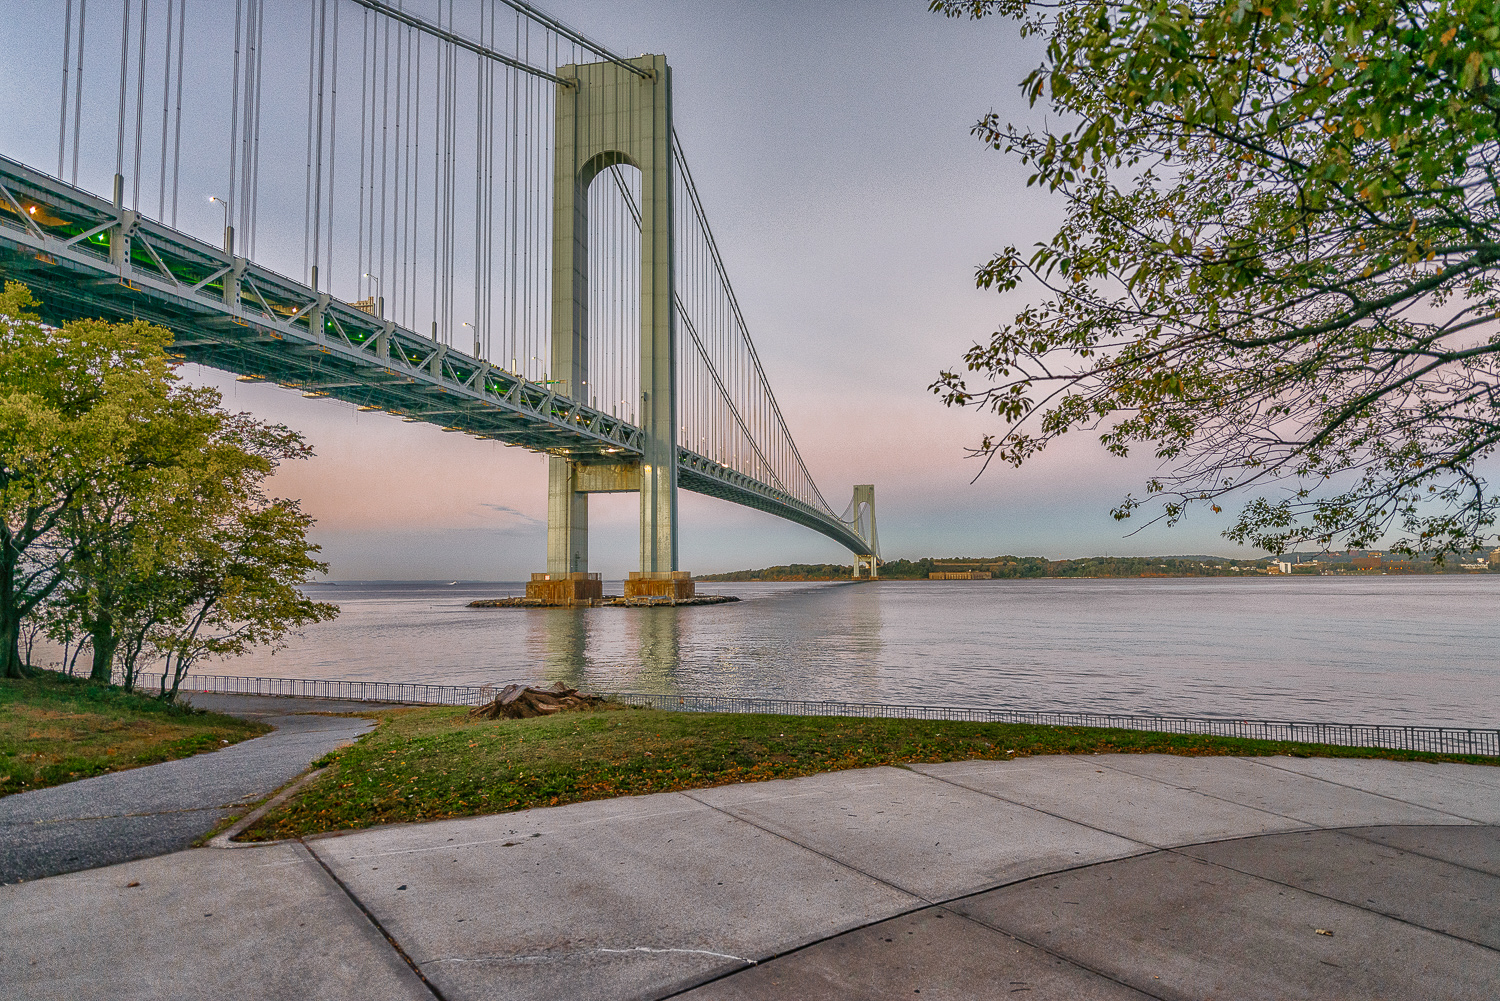 Killer Joe Photography - Verrazano Bridge - Shore Road Park